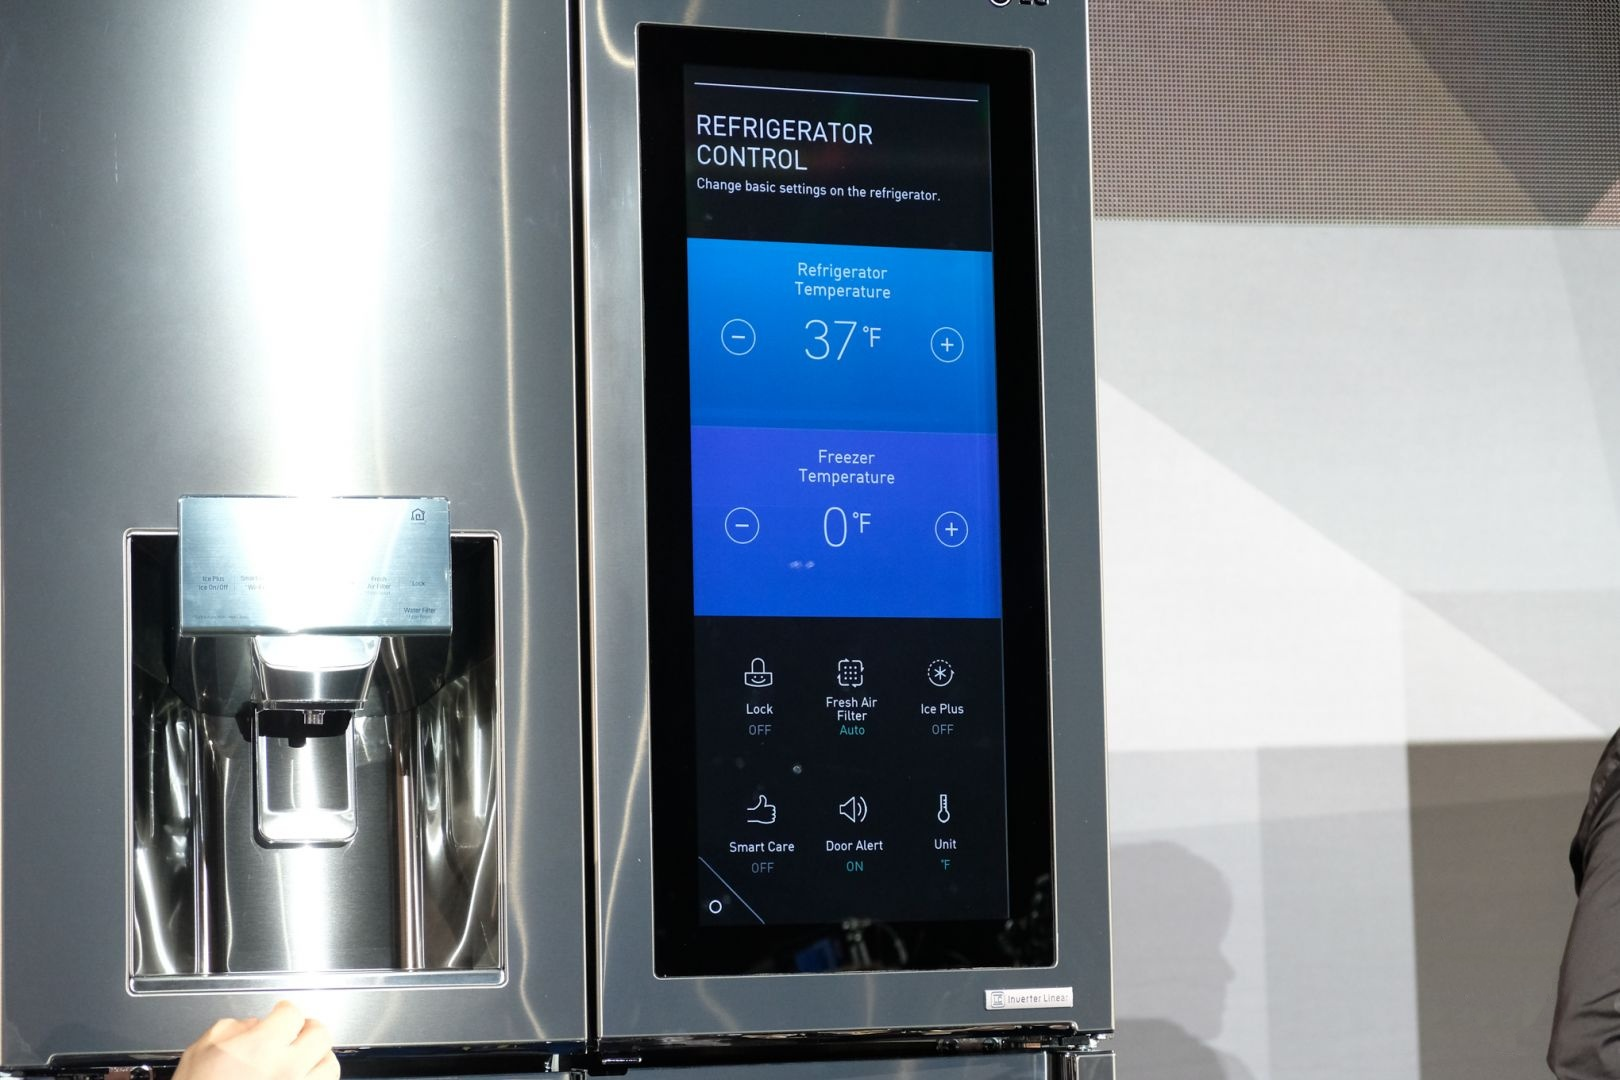 LG_Smart_Fridge_webOS_CES_6.jpg